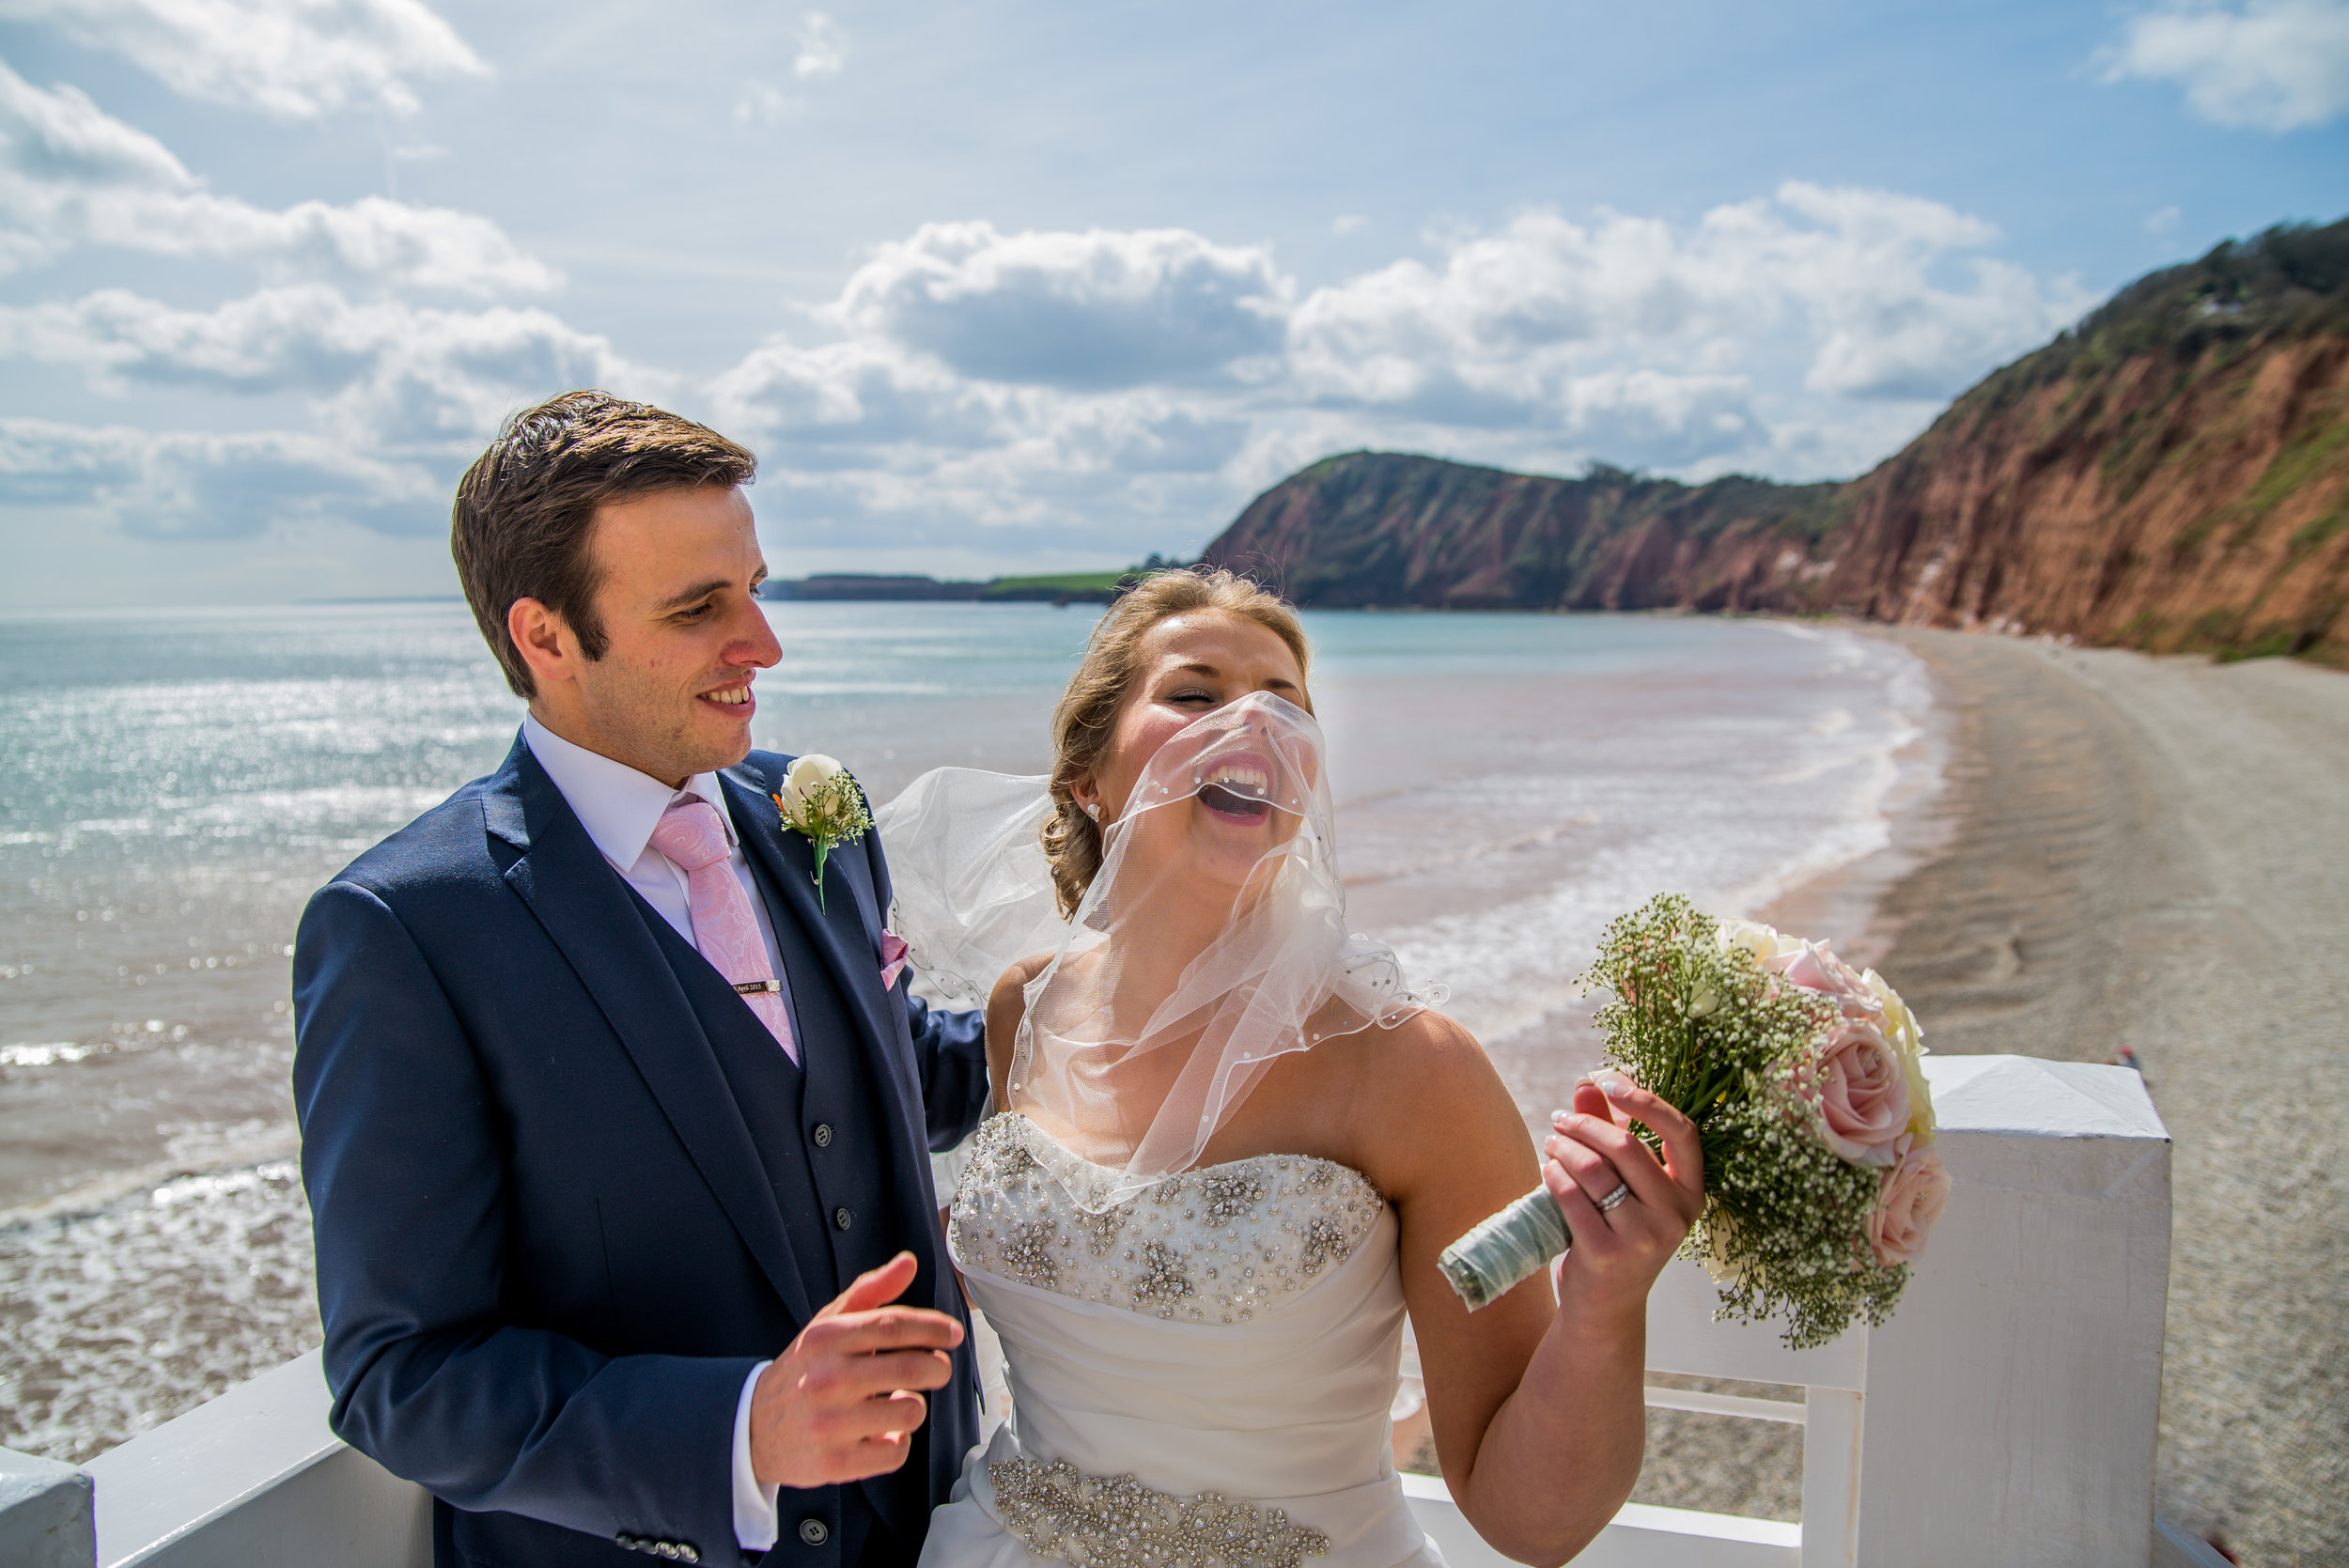 Professional Wedding Photographer - James A Photography